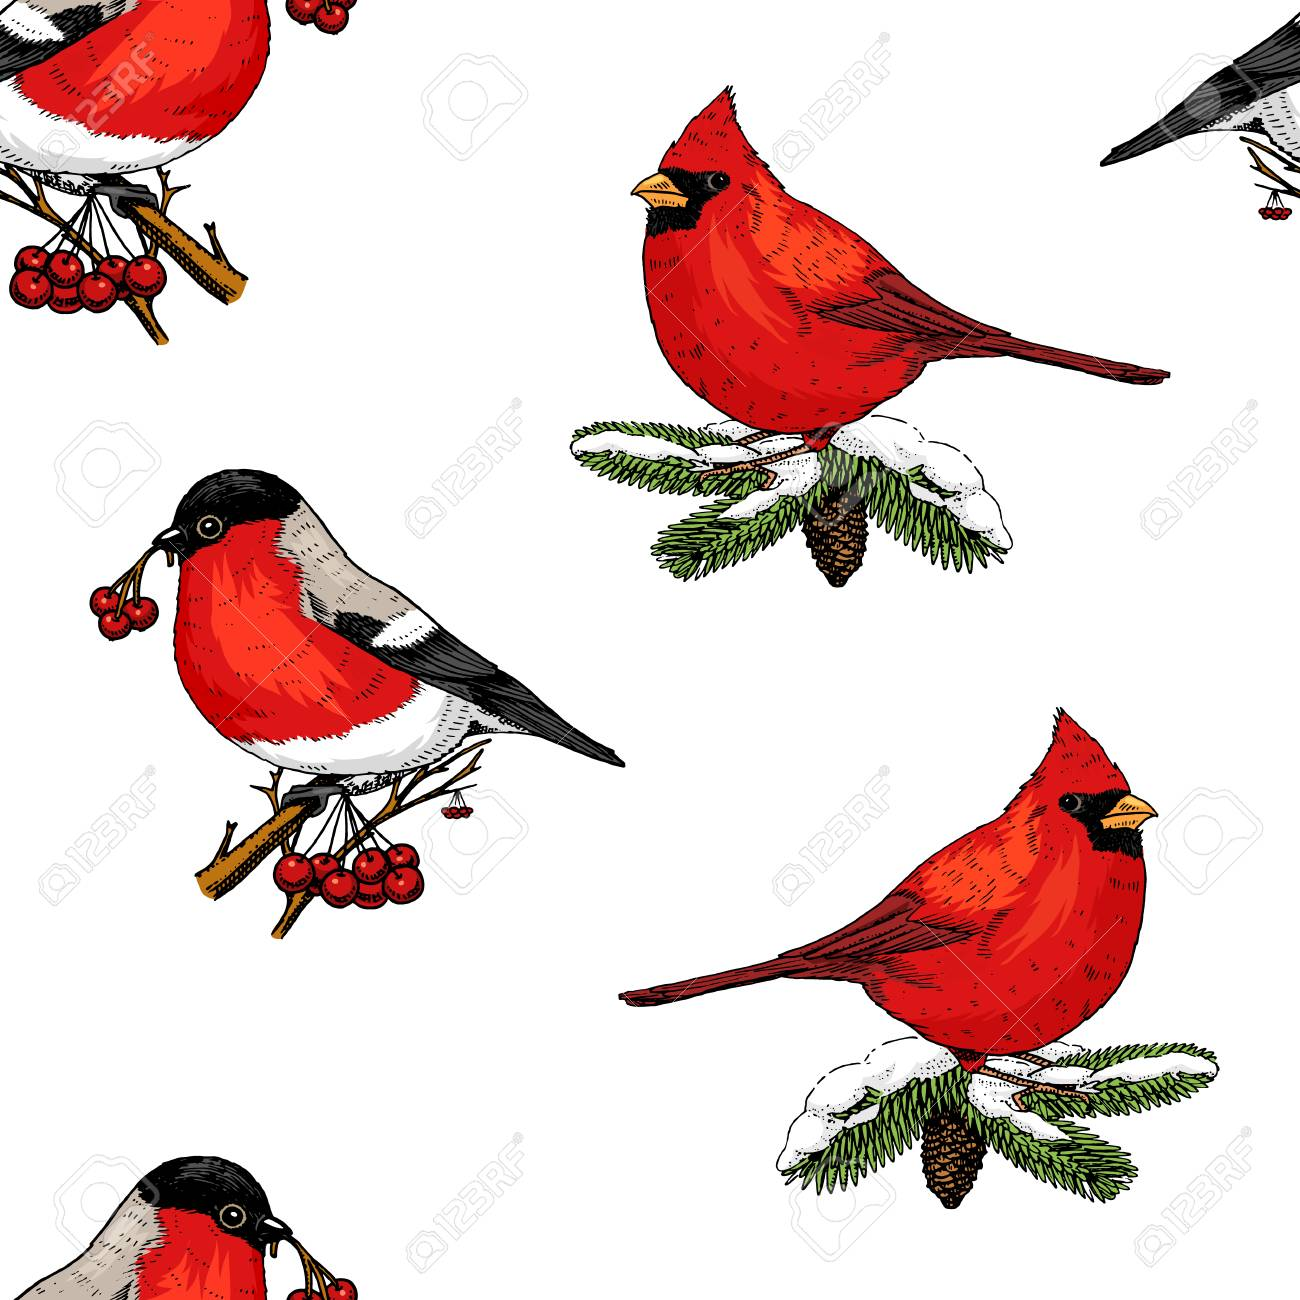 seamless pattern holly and bullfinch, red cardinal, birds. Merry...